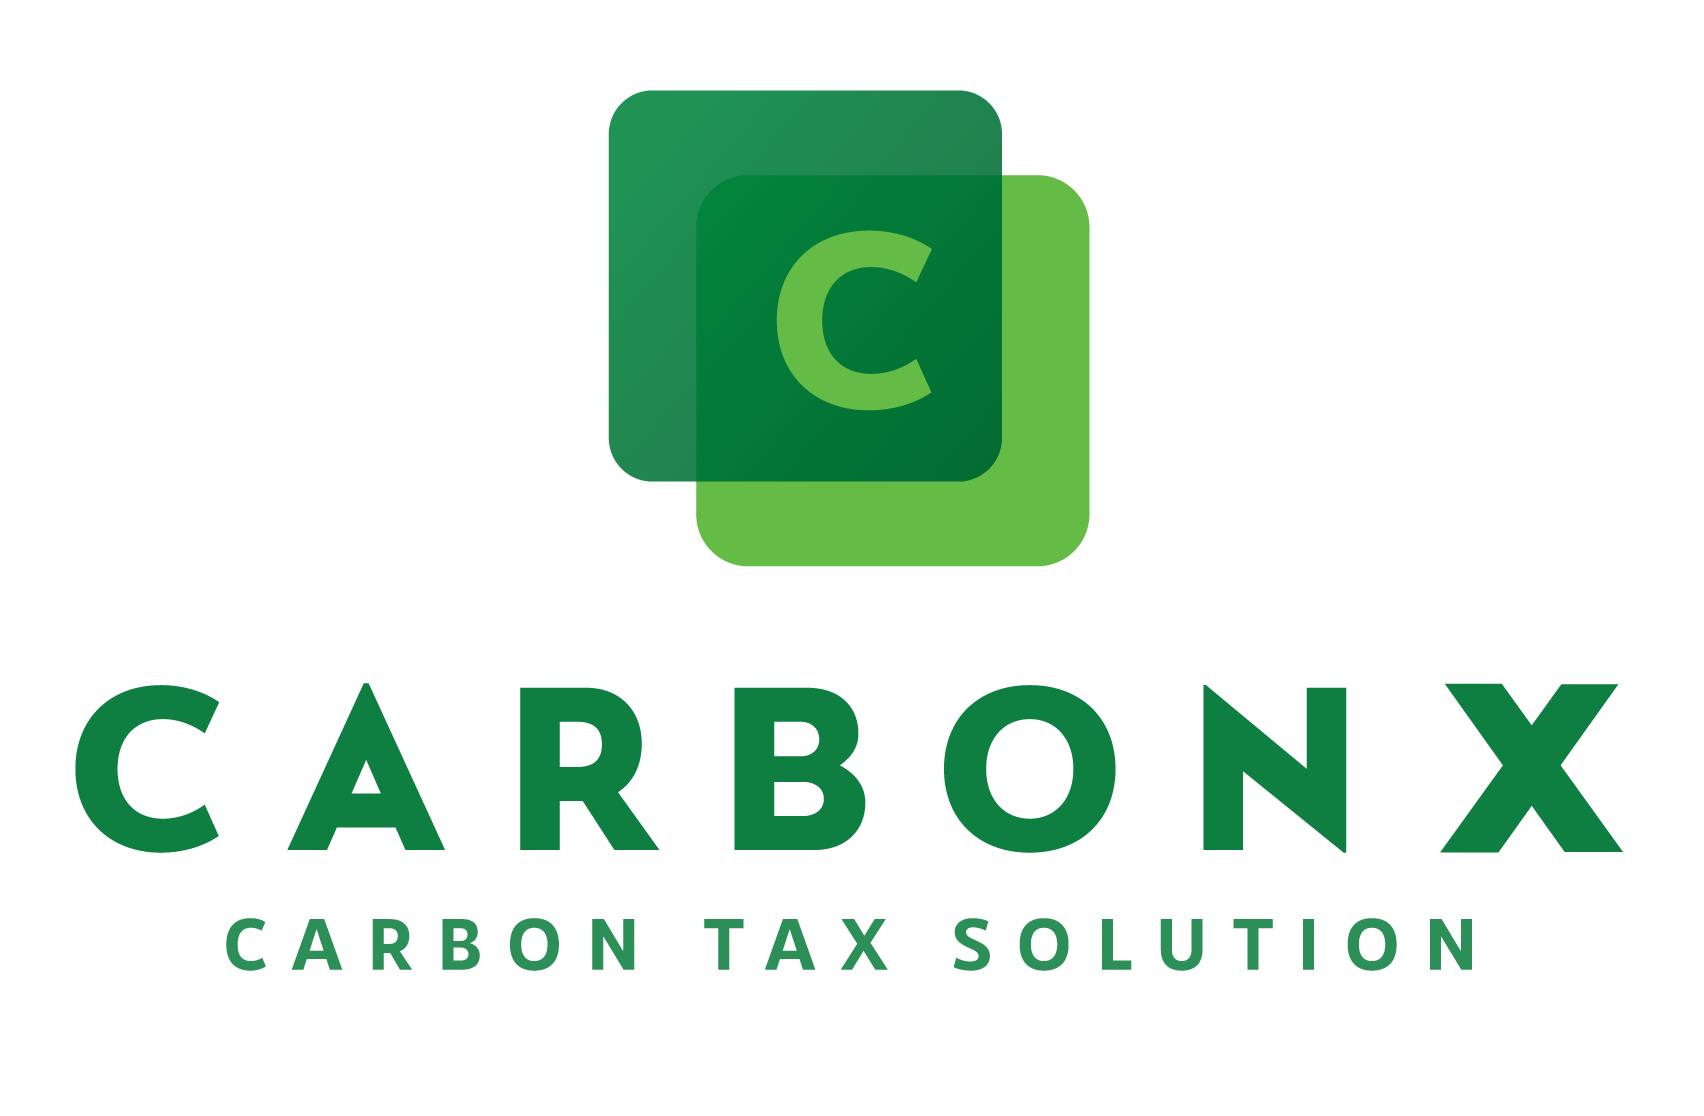 CarbonX - A Carbon Tax Solution